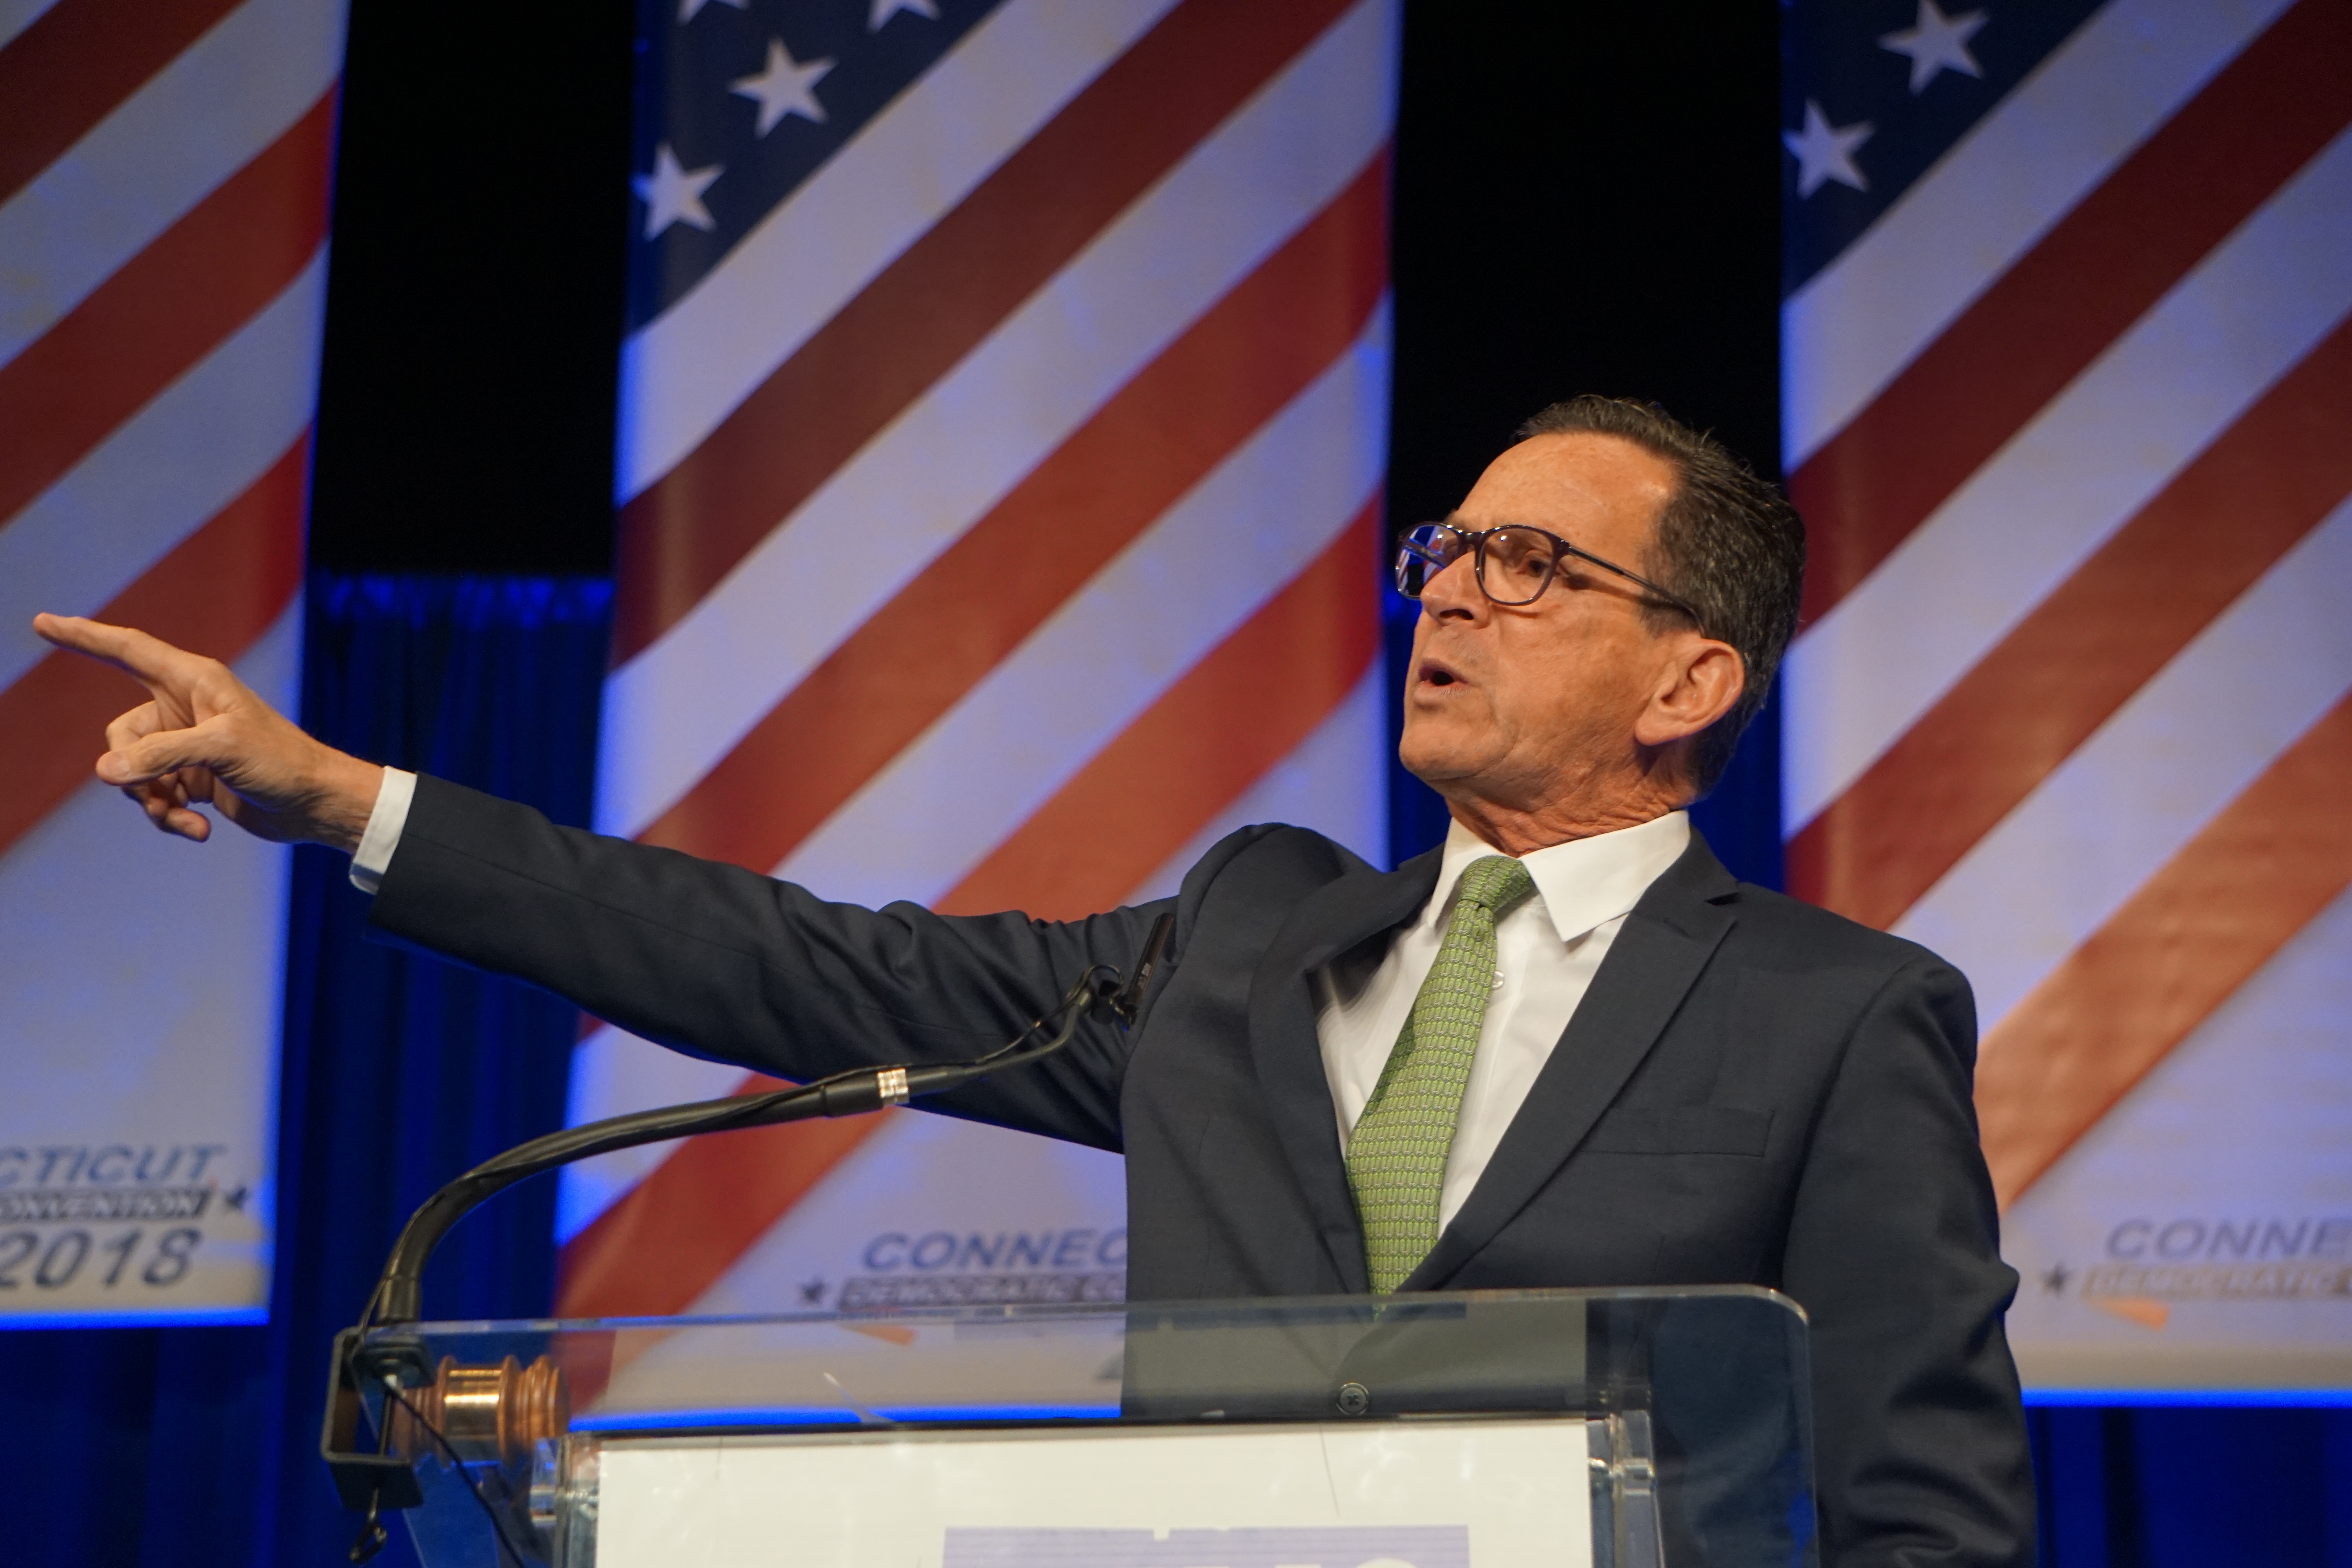 Malloy delivers a pep talk and a heartfelt farewell